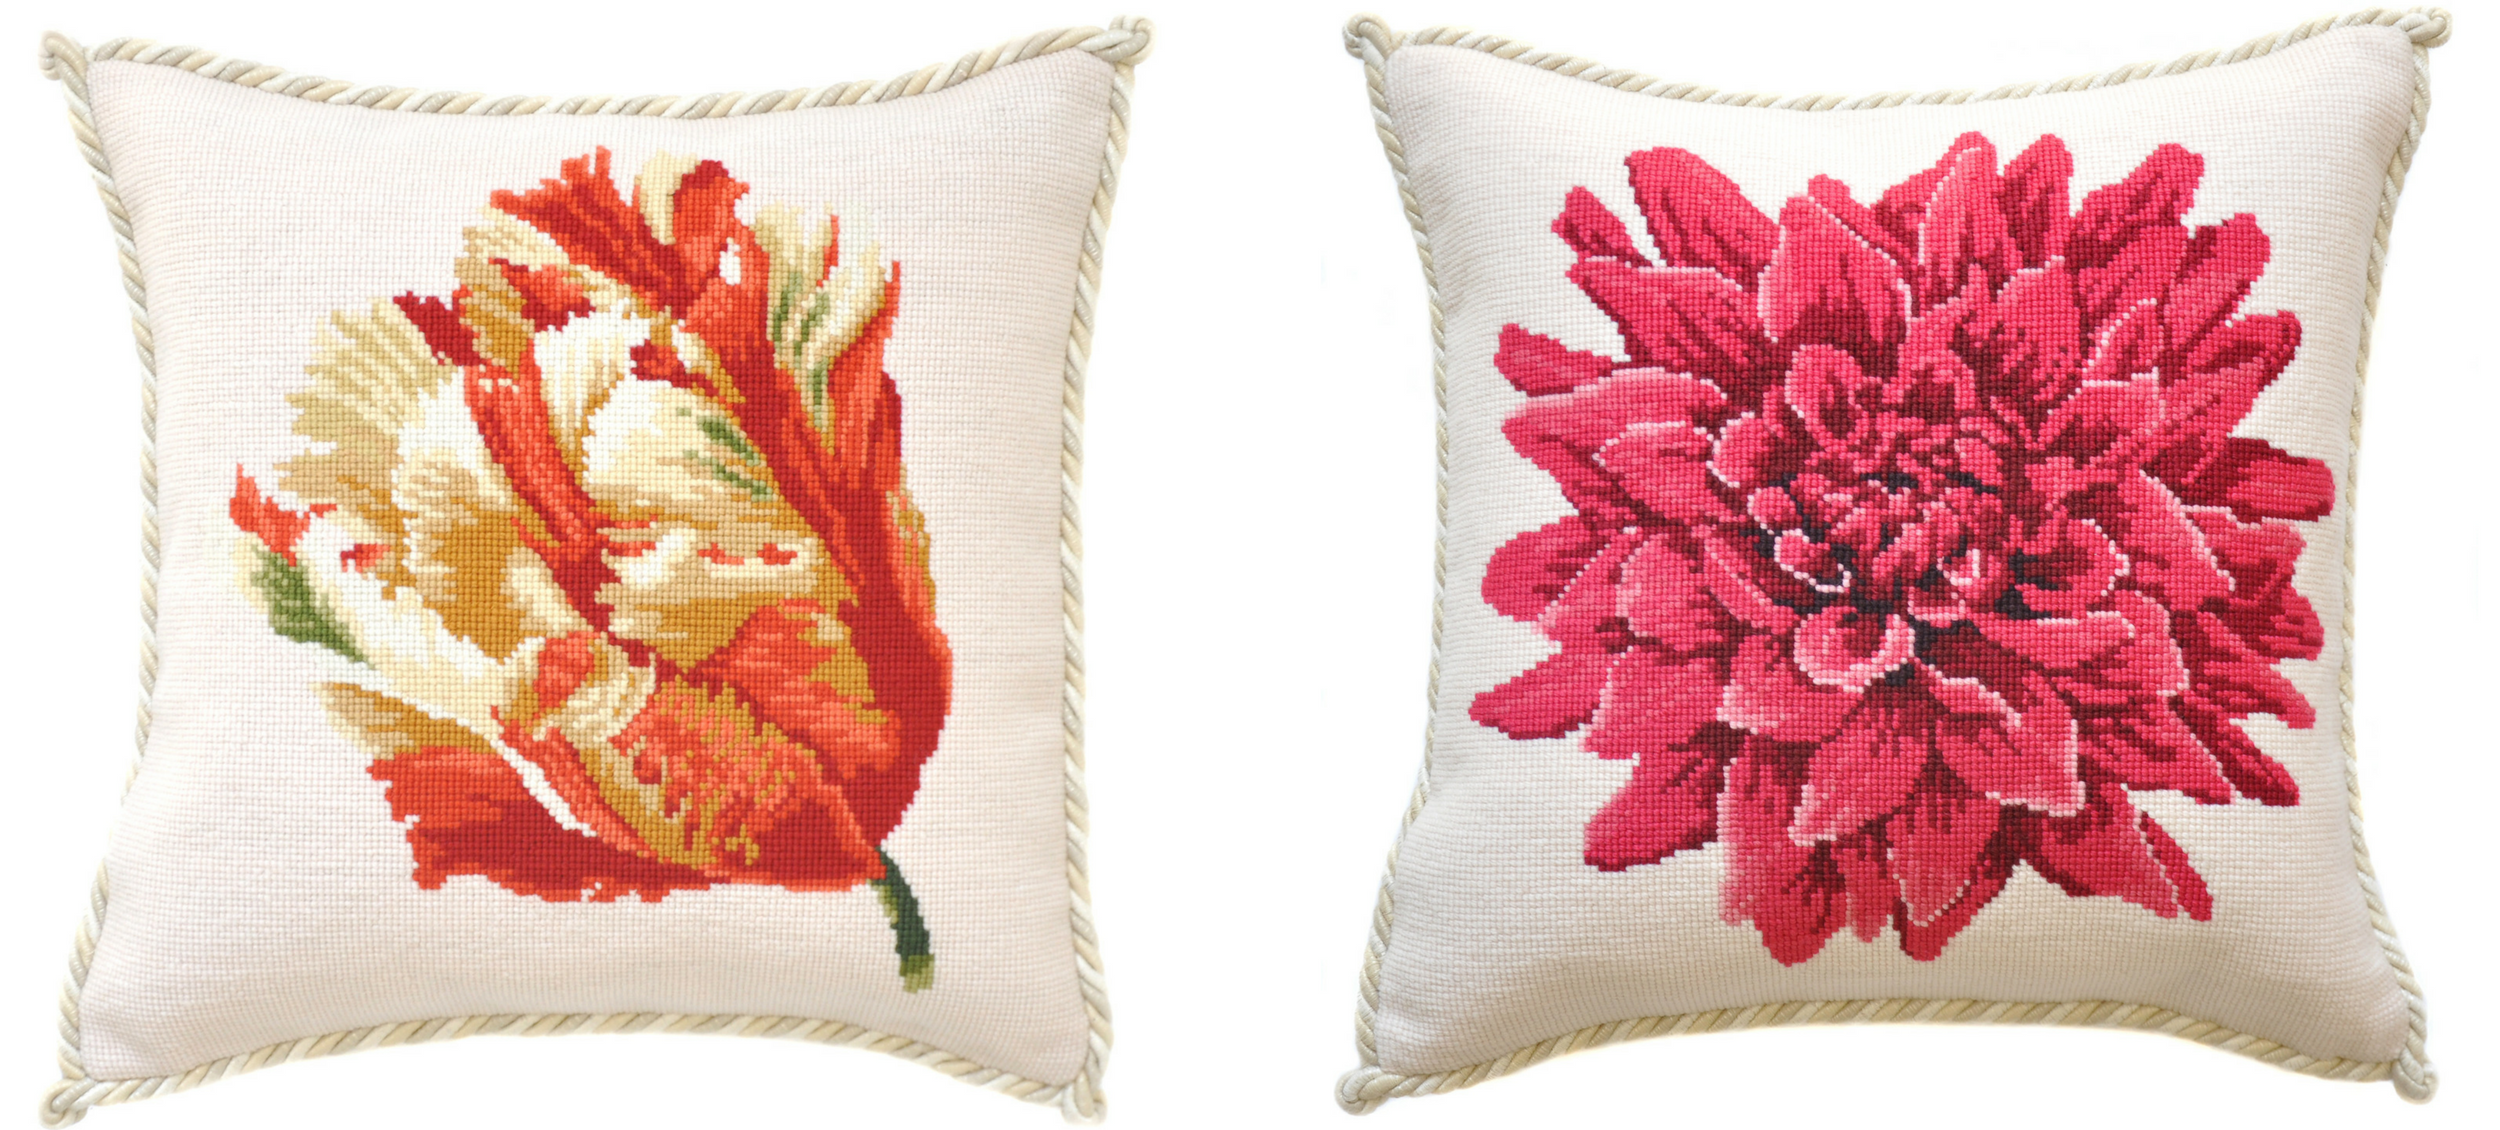 Floral needlepoint pillows